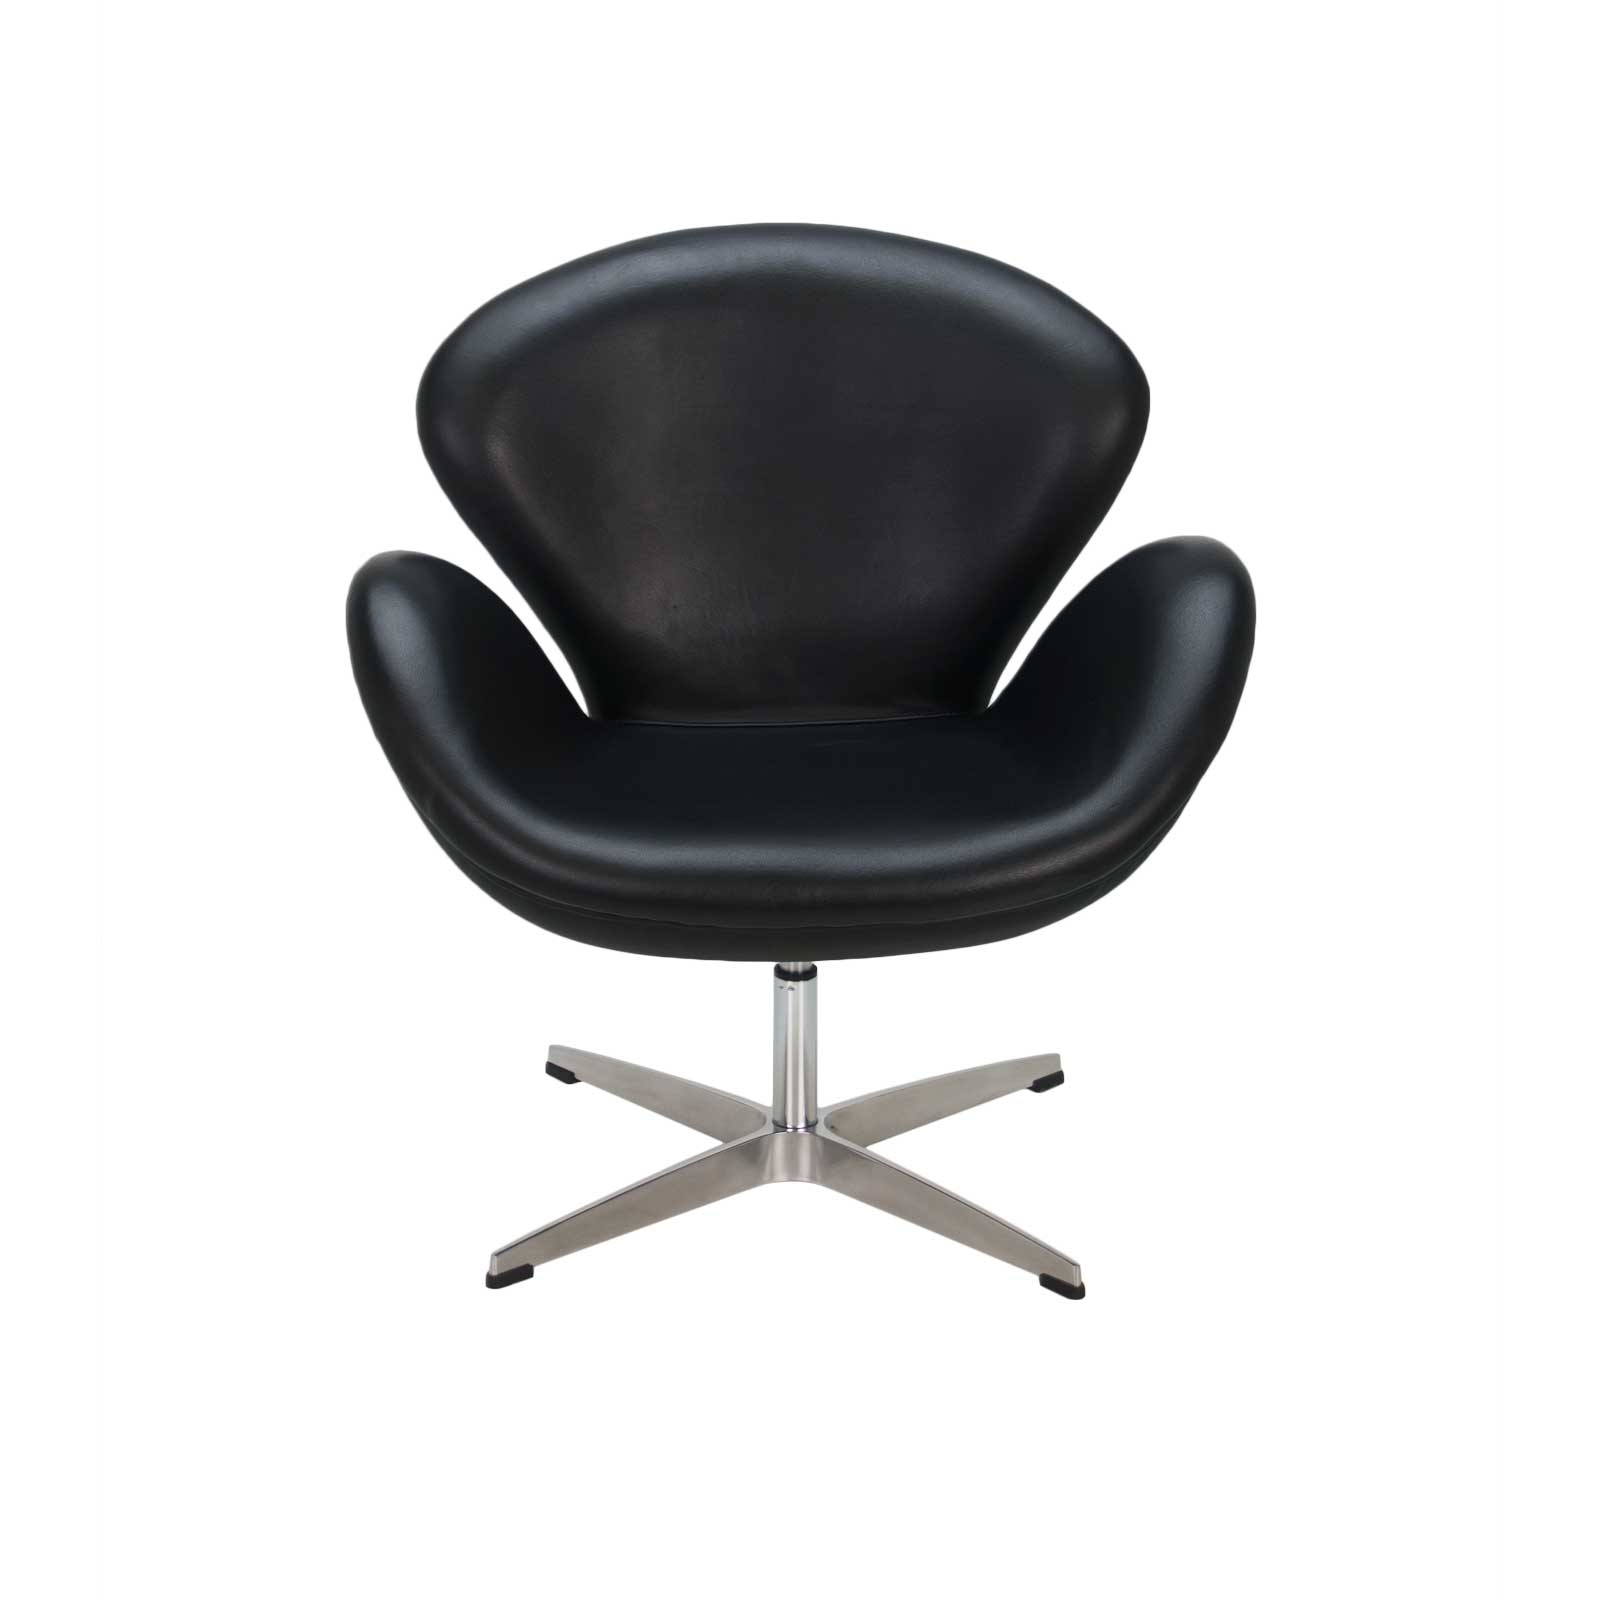 Arne Jacobsen Swan Chair Black Formdecor - Arne Jacobsen Chair